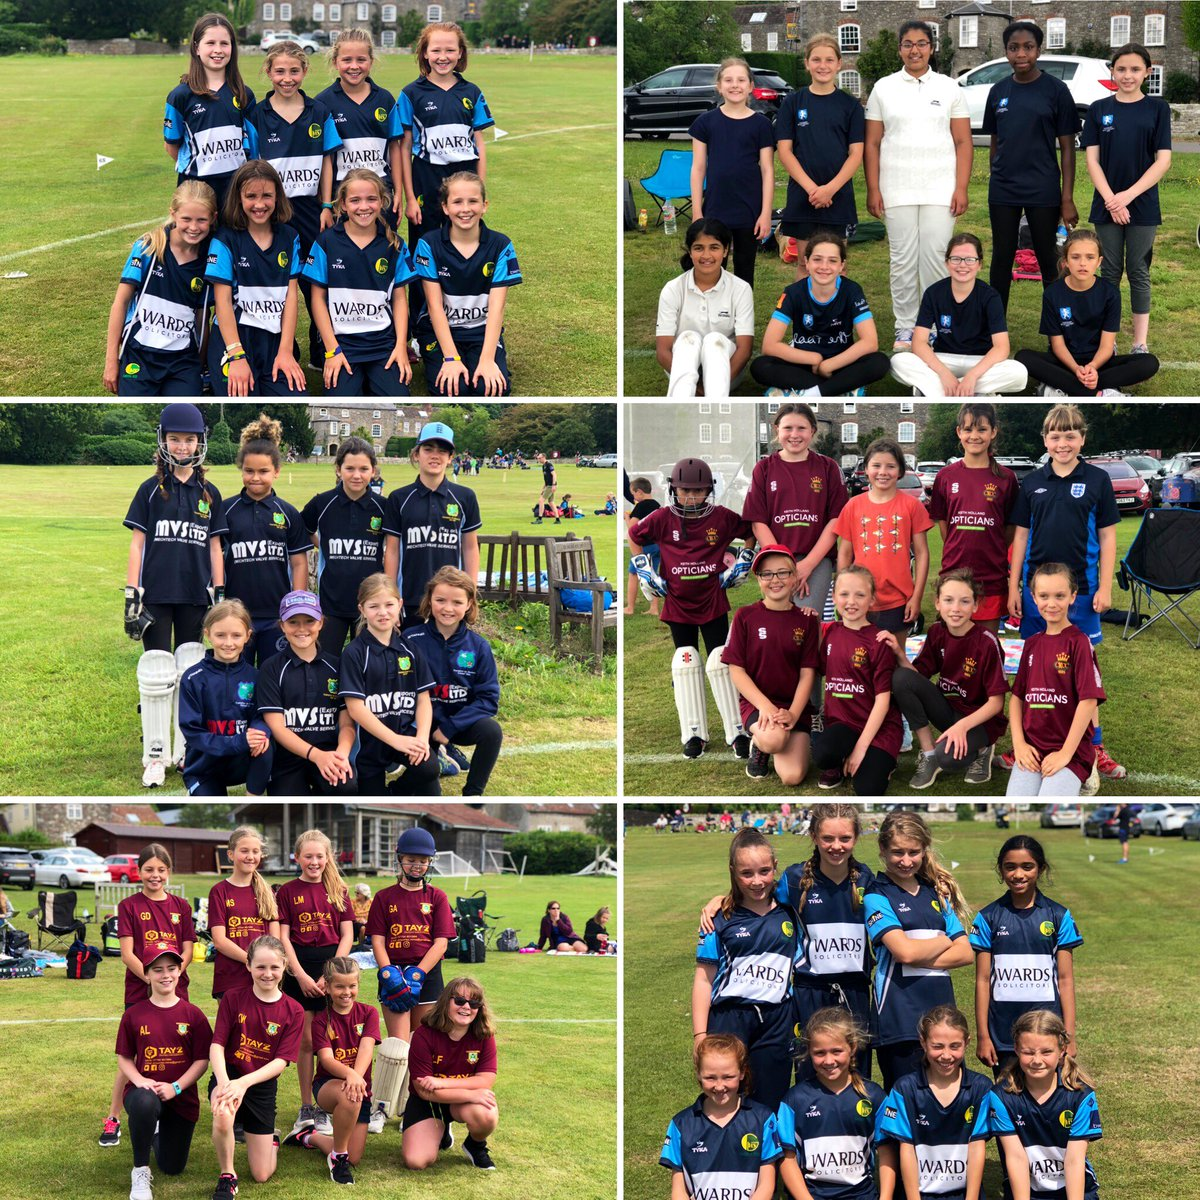 test Twitter Media - Well done to our 6 teams who took part in today's Under 11 Girls Blast! A huge thank you to @TockingtonManor for hosting & providing a lovely environment for the girls play hard ball cricket in 😀💥🏏 #girlscricket https://t.co/WyAEQ8pfNR